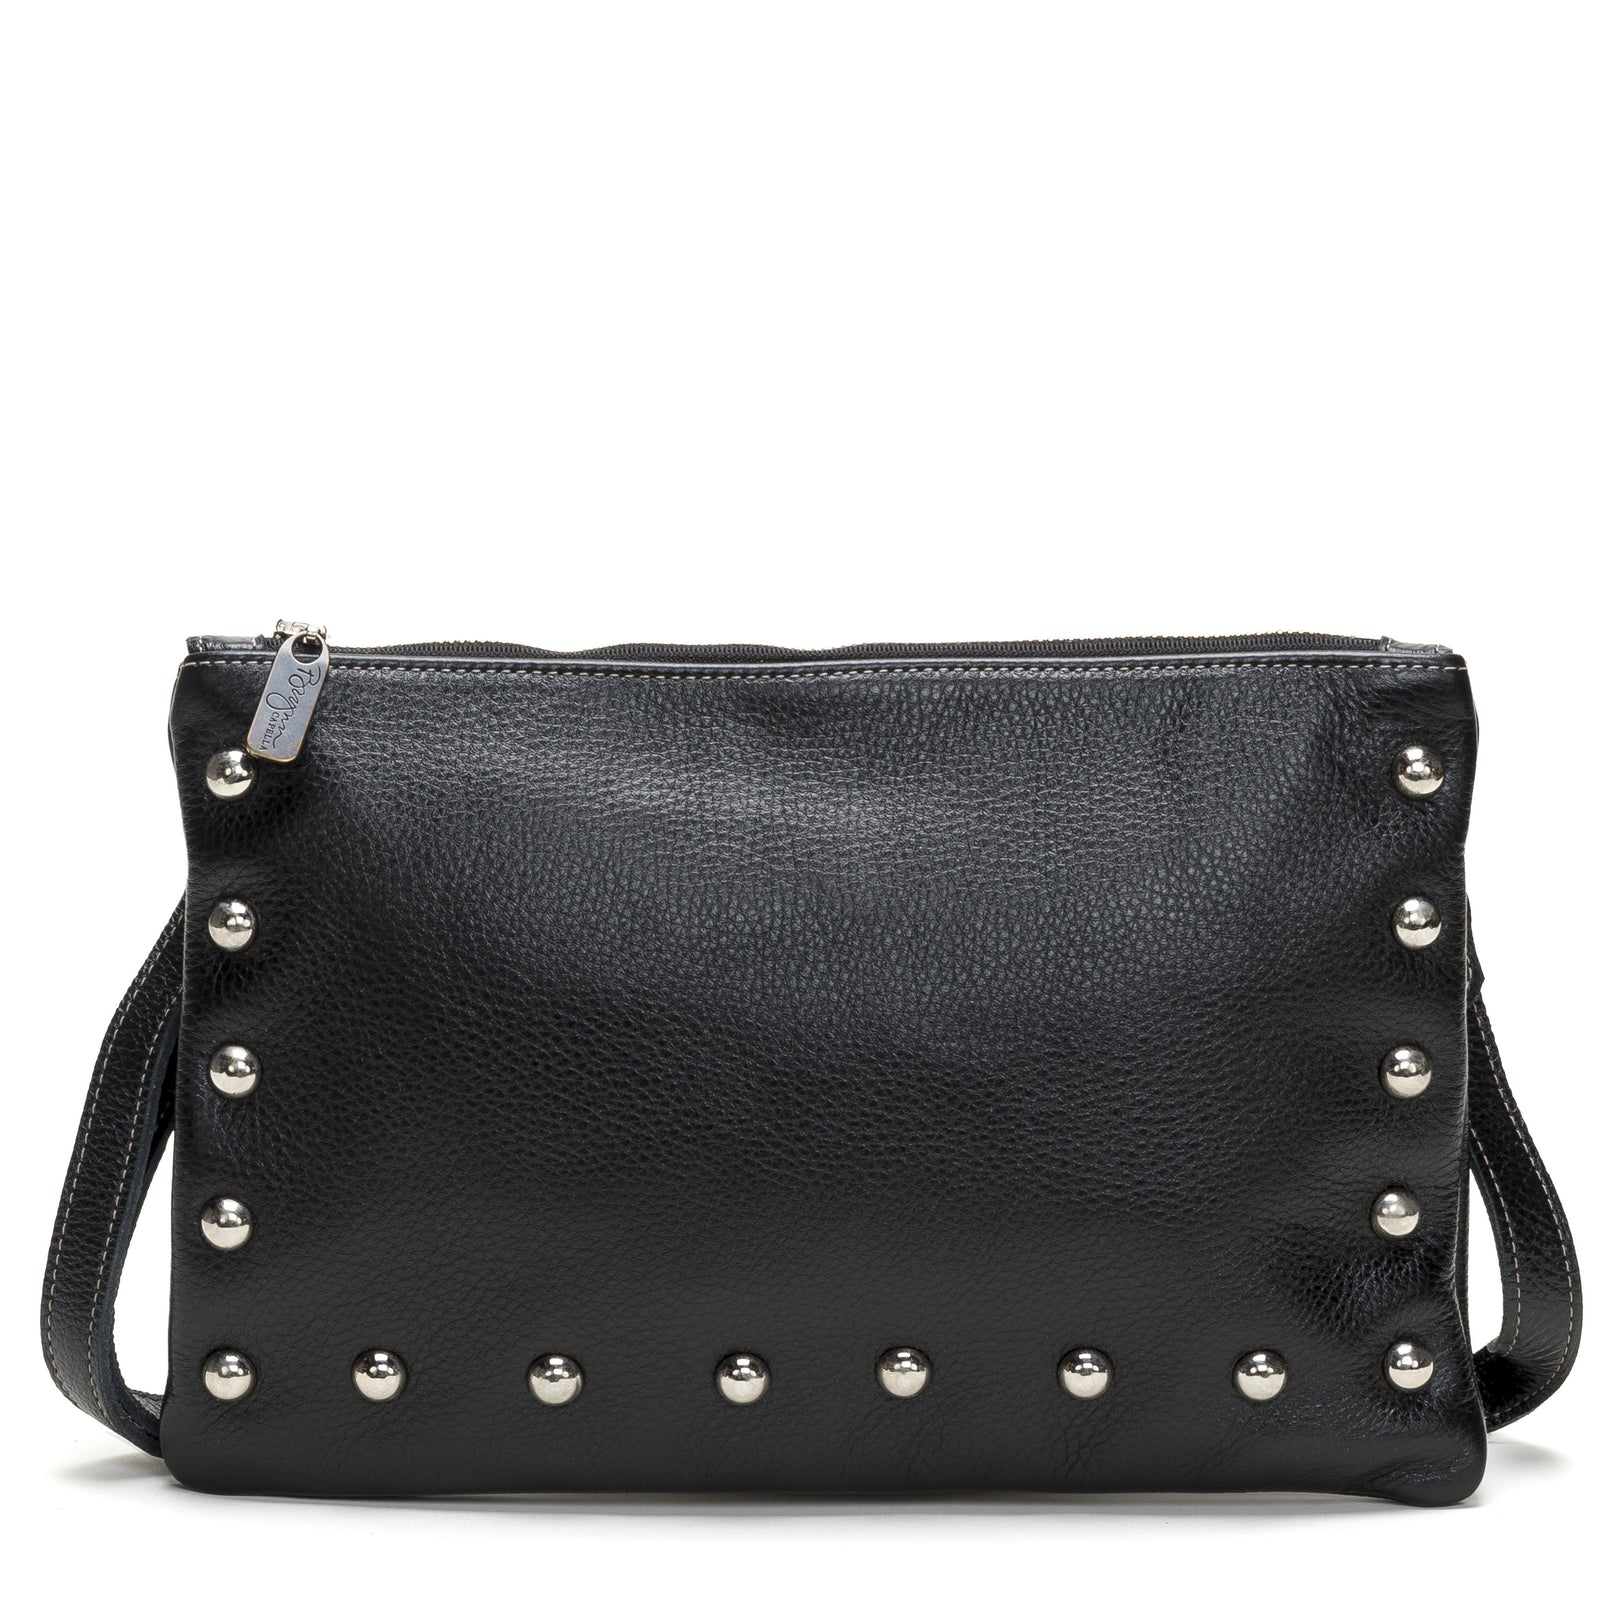 Nikki Clutch/Crossbody - Noche - Brynn Capella, Small Crossbody